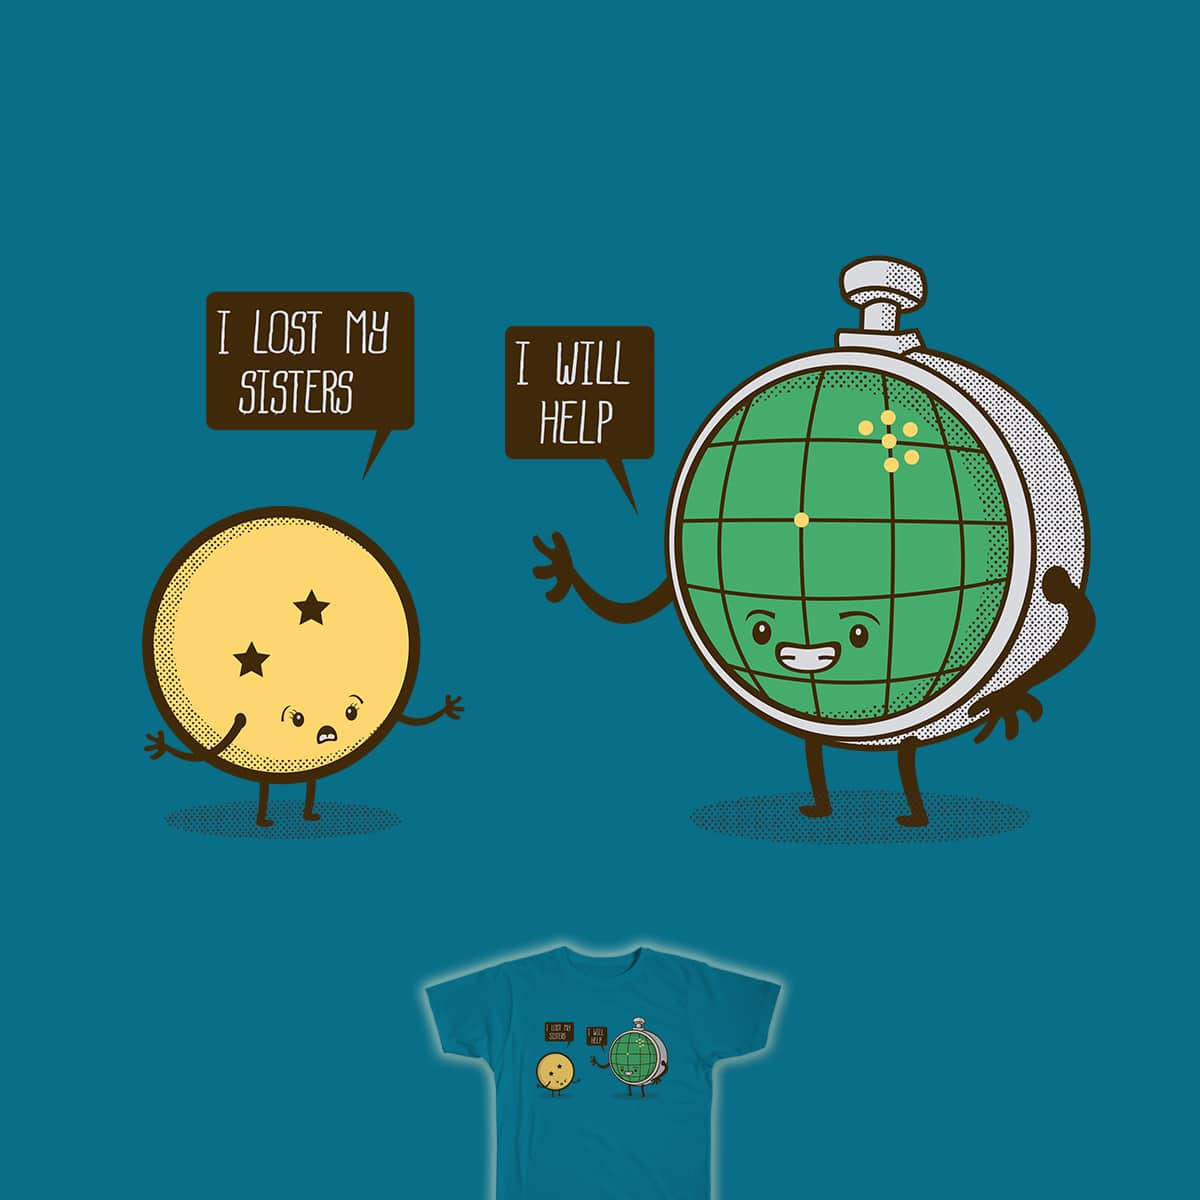 Lost sisters by BobadasGraficas on Threadless